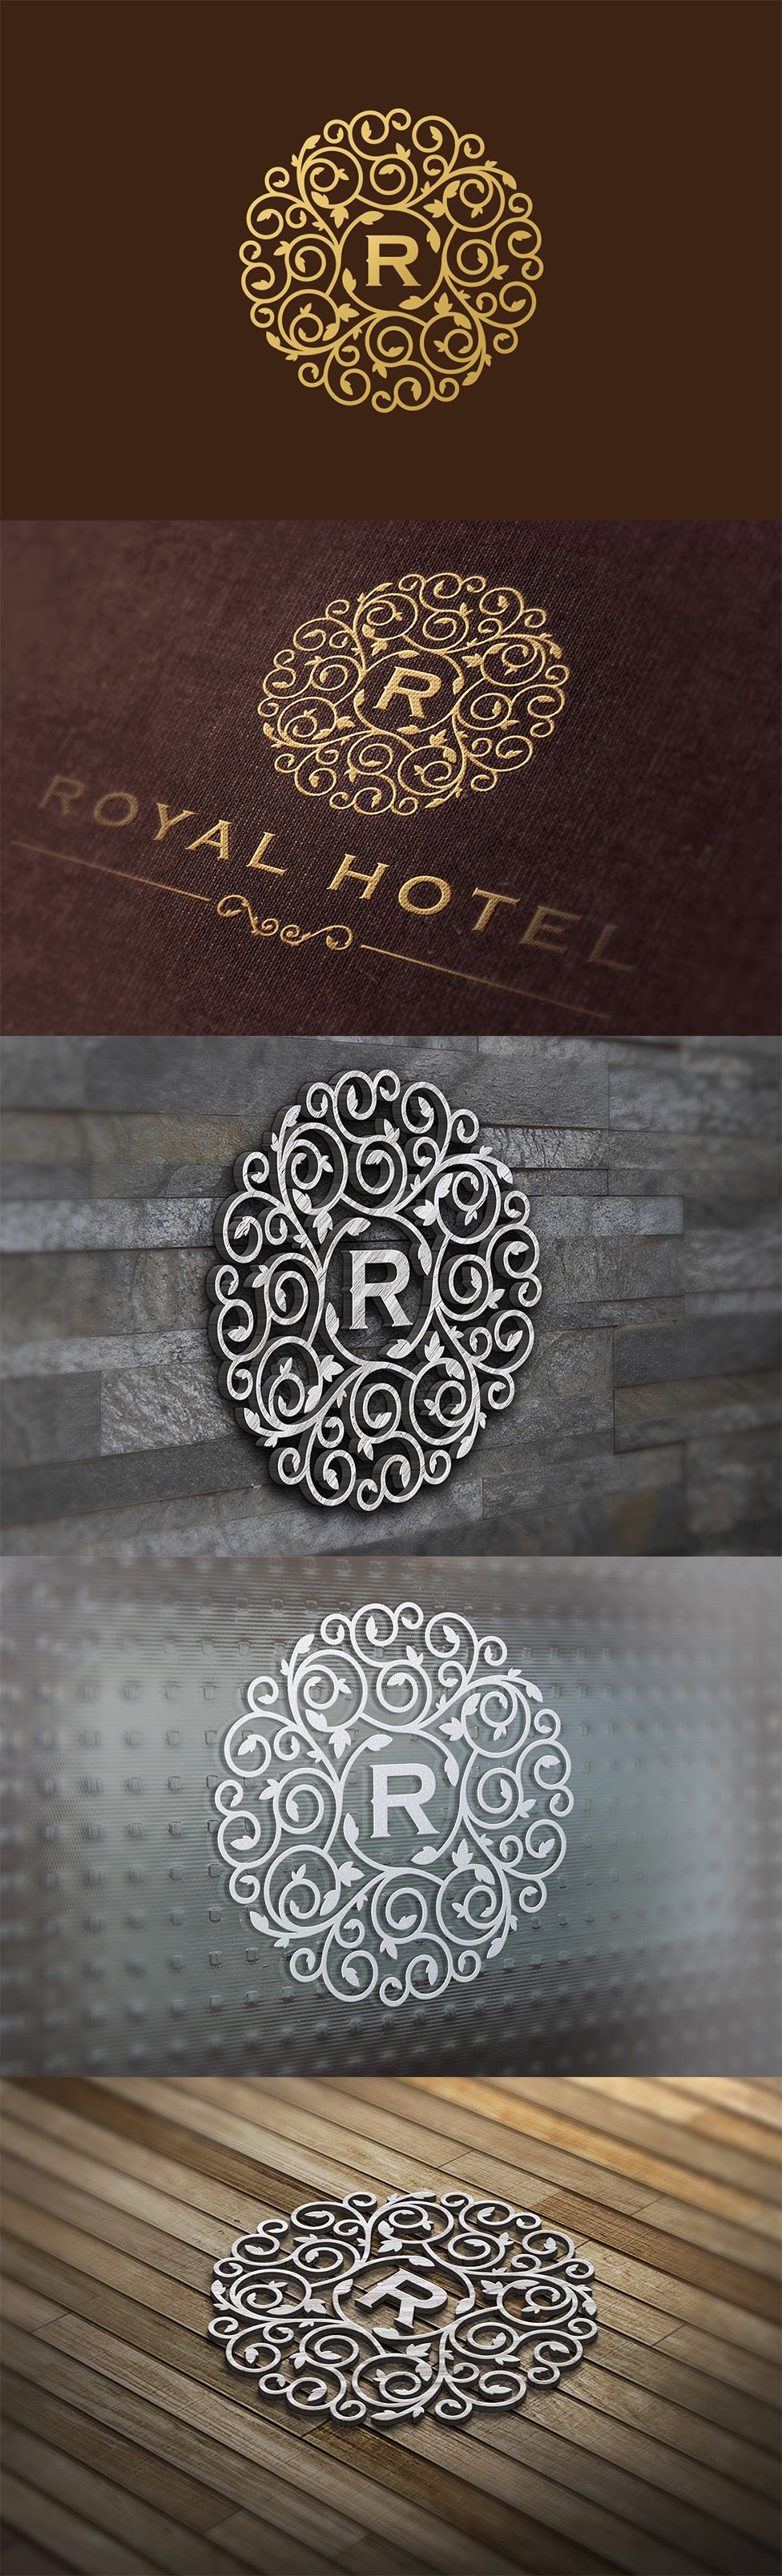 Royal Luxurious Logo Template.